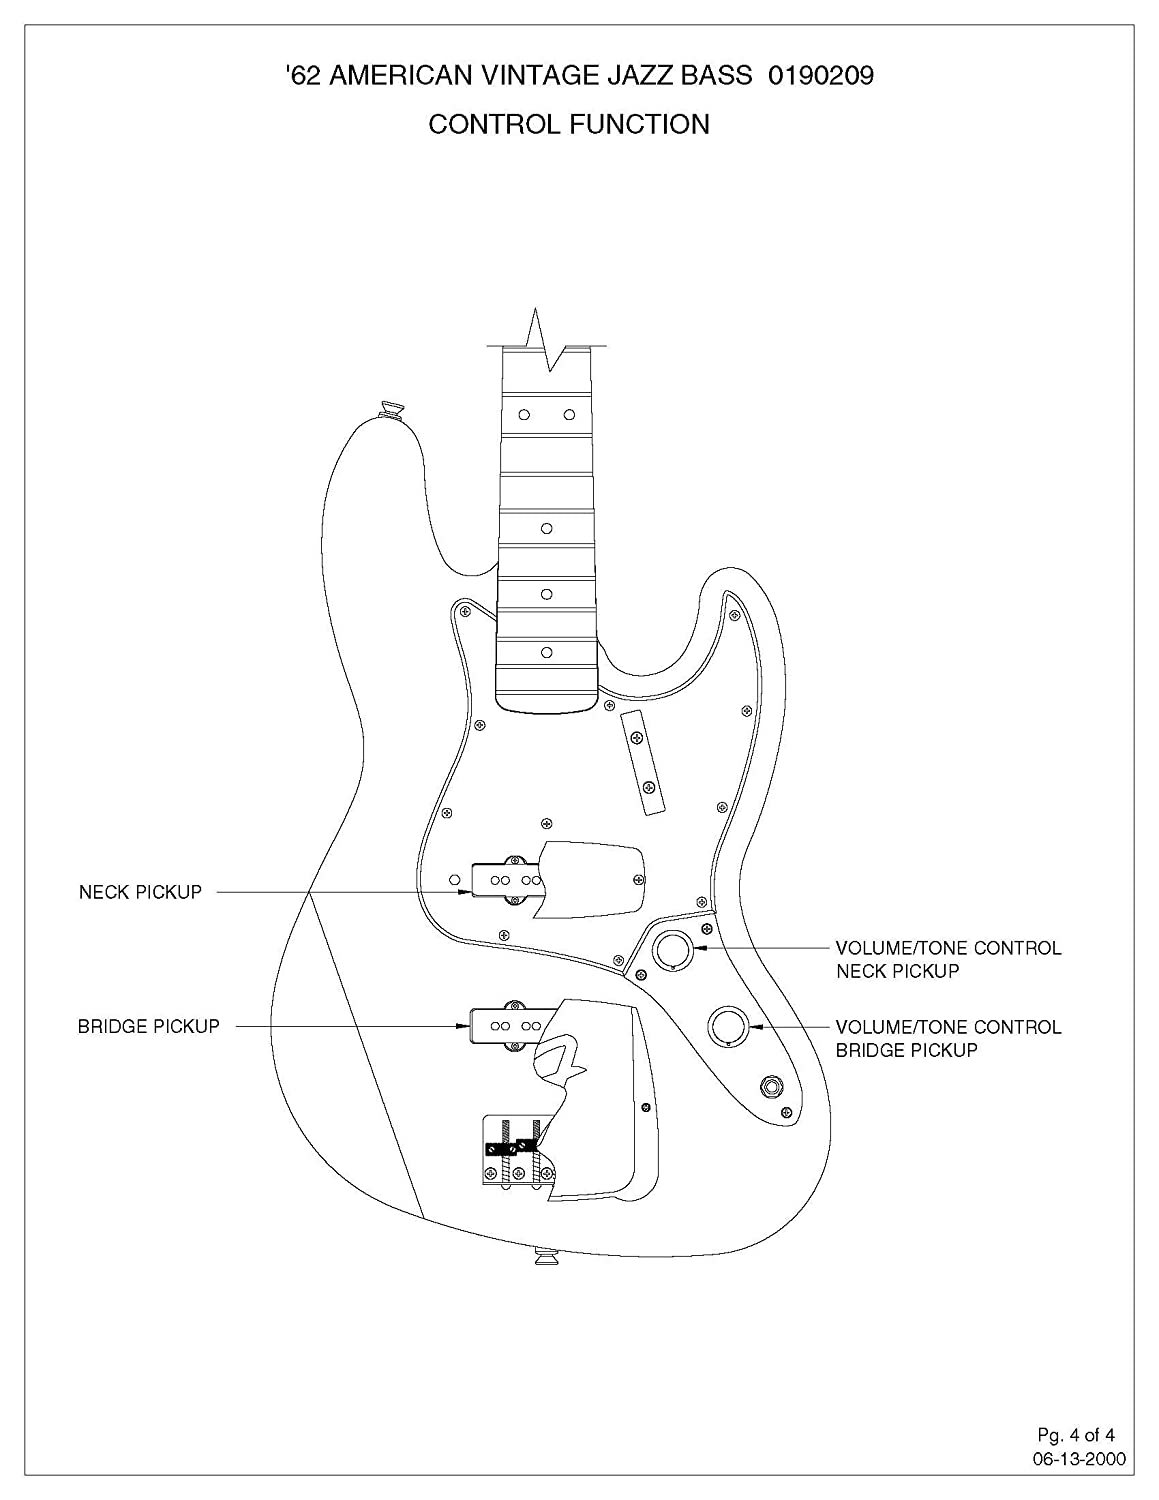 Fender Blacktop Jazz Bass Wiring Diagram : Fender blacktop tele wiring  diagram jazzmaster